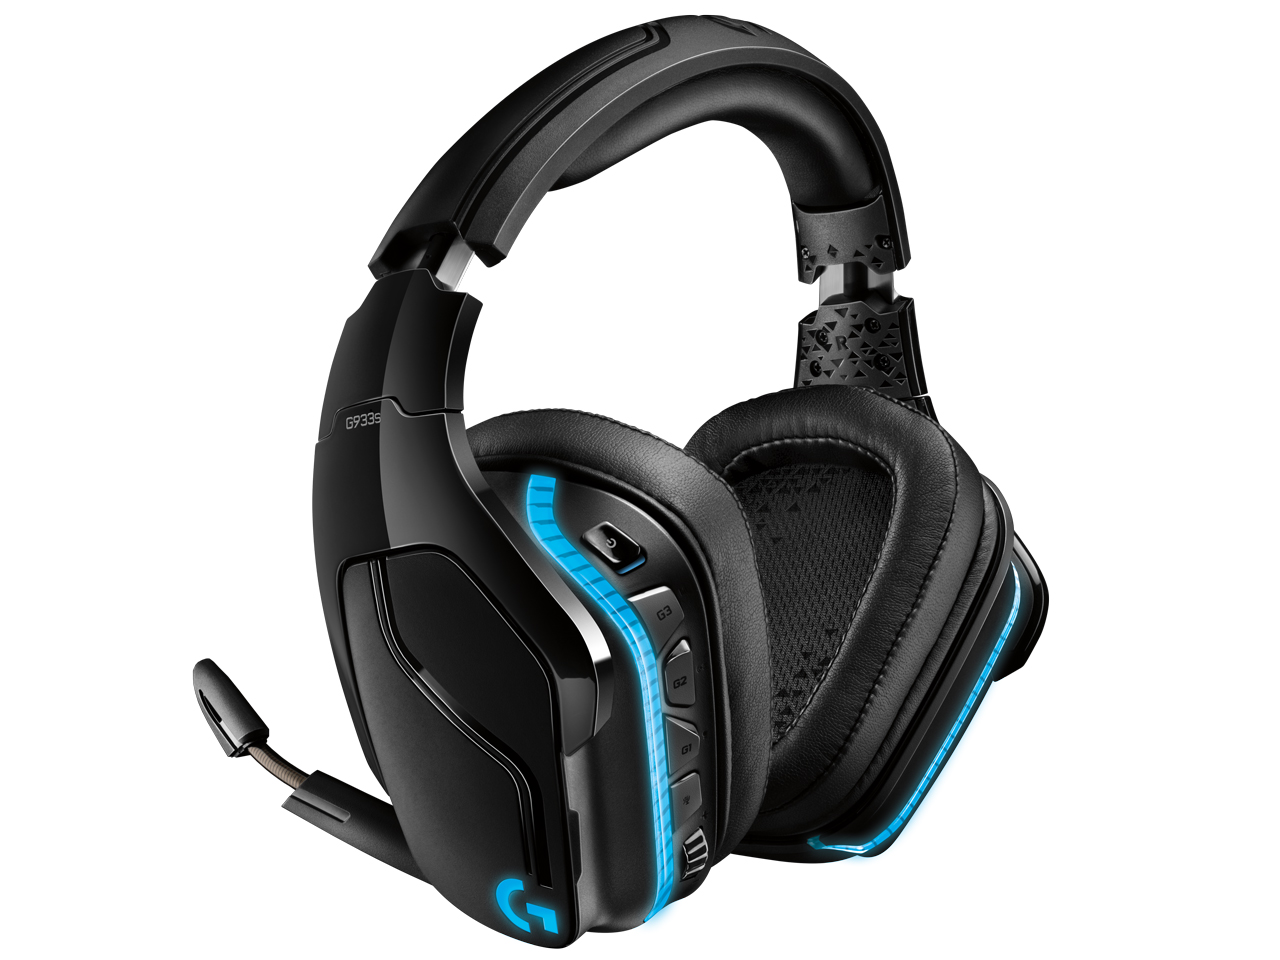 G933s Wireless 7.1 LIGHTSYNC Gaming Headset